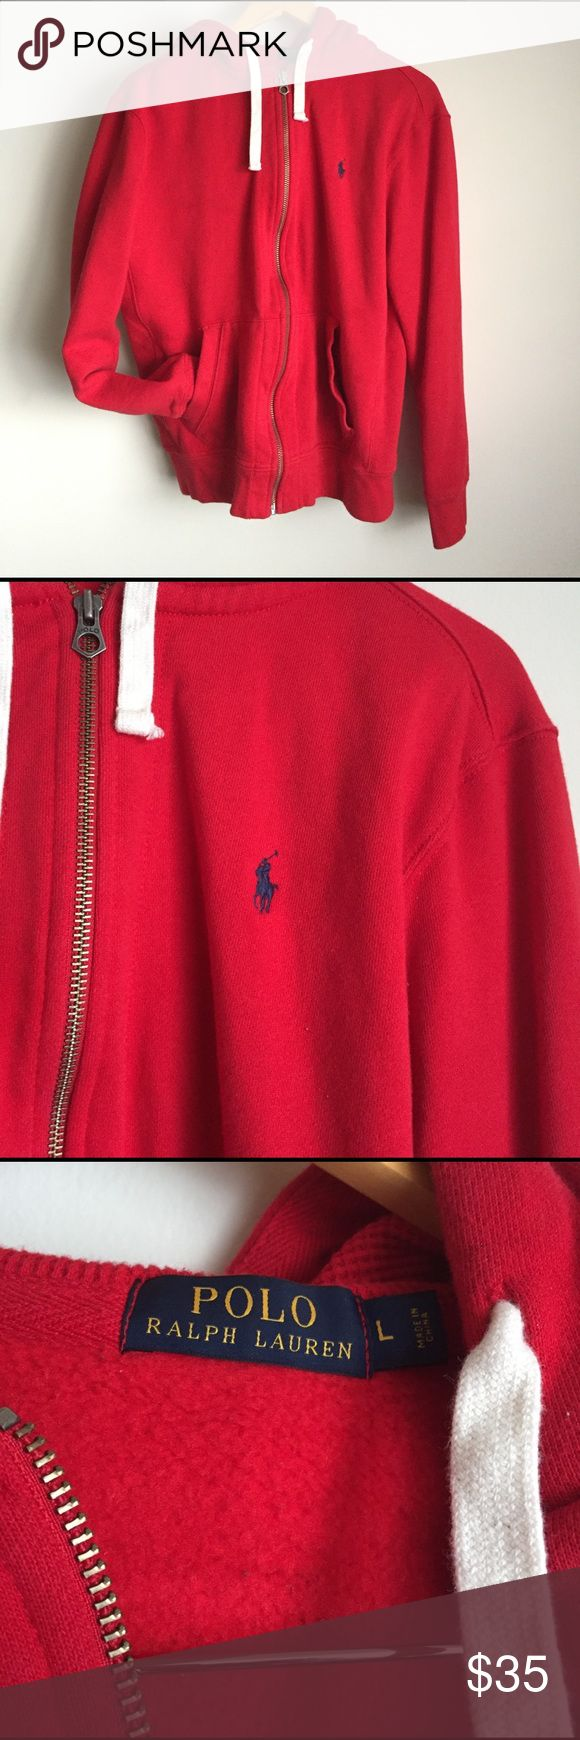 RALPH LAUREN POLO Red Zip Up Hoodie MENS • Gently worn • great condition • RALPH LAUREN POLO Red Zip Up Hoodie With a Blue Logo and Fleece lining • bundle discount offered Ralph Lauren Sweaters Zip Up